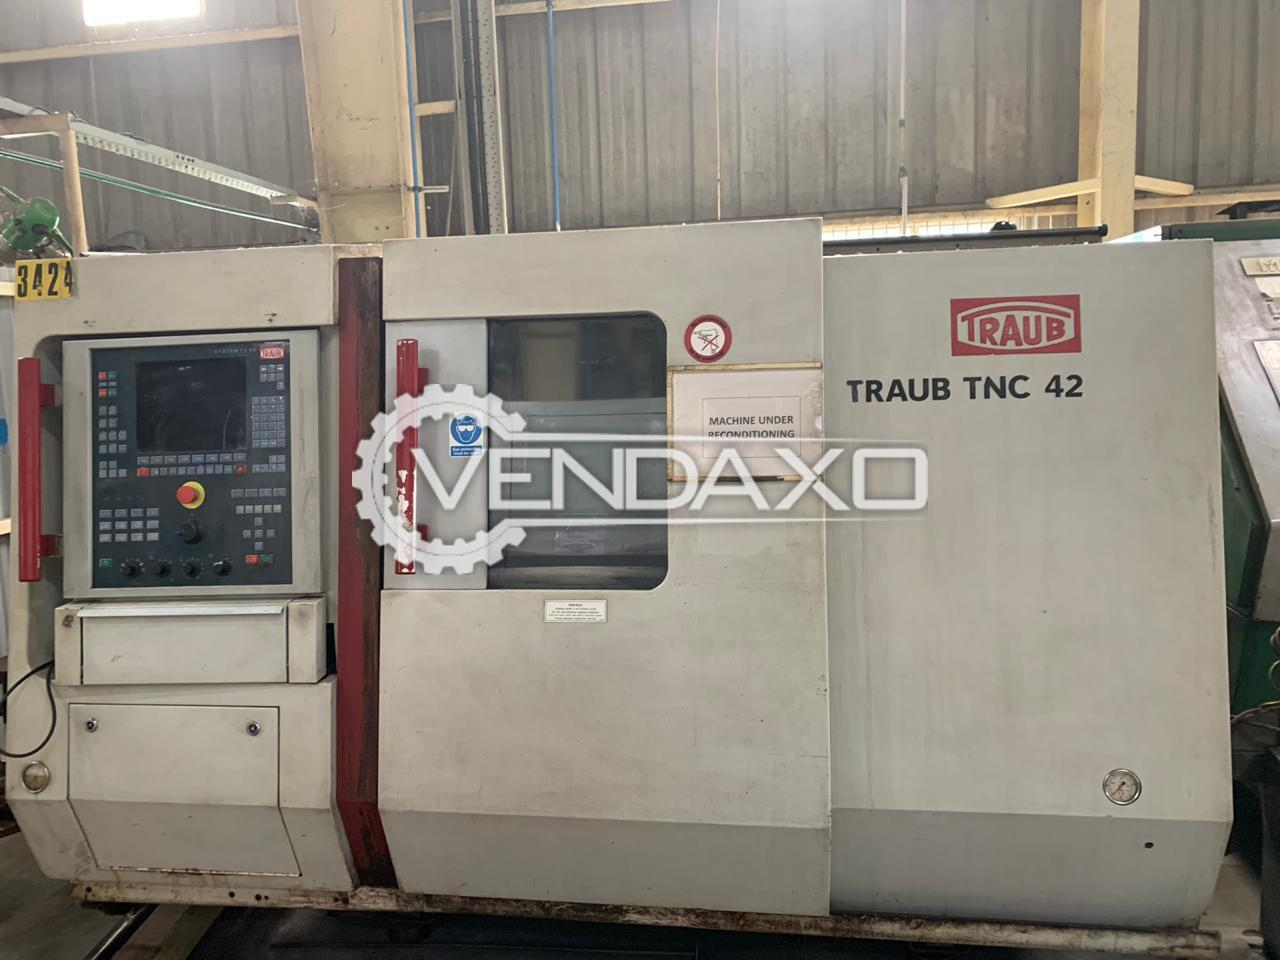 Used Cnc Based for Sale | Buy or Sell Used Cnc Based Online